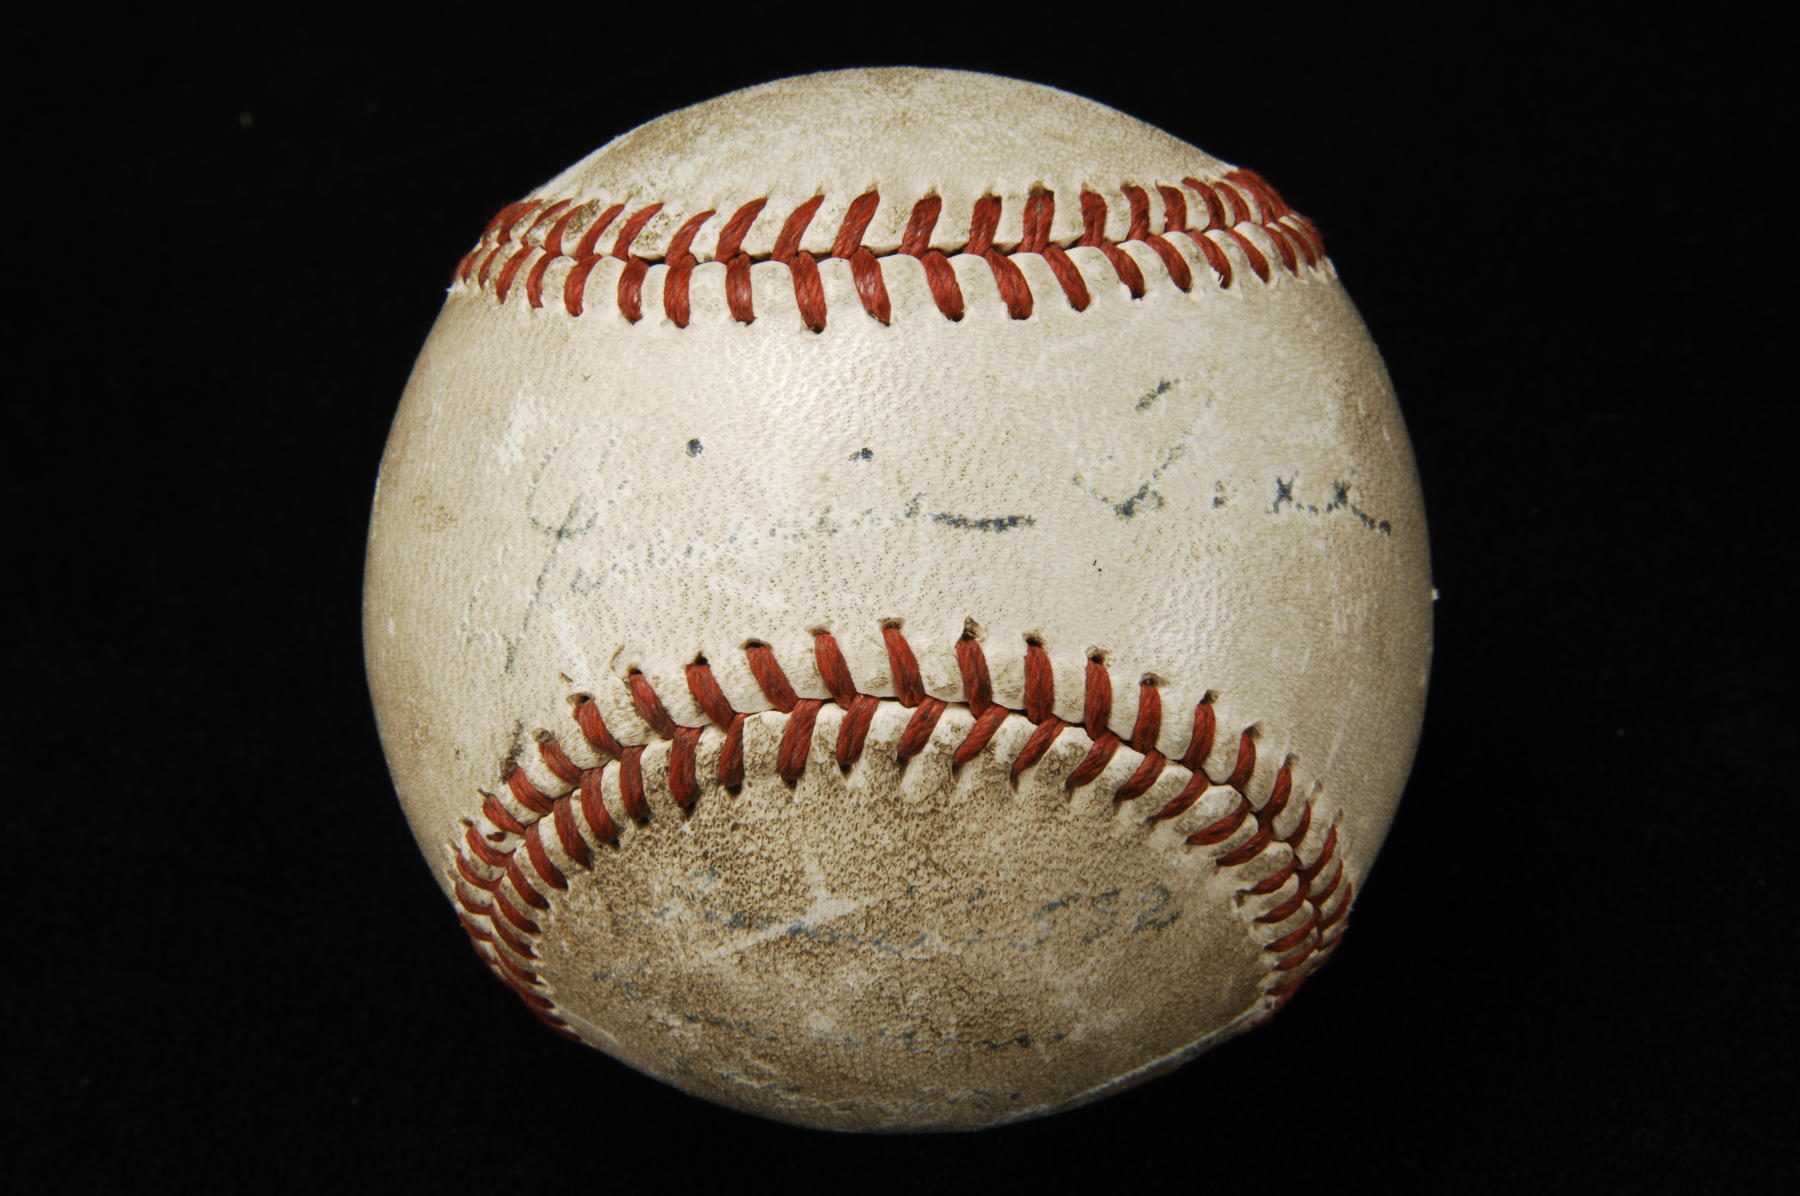 Ball hit by Jimmie Foxx for his 532nd career home run, August 20, 1945 - B-361-70 (Milo Stewart Jr./National Baseball Hall of Fame Library)